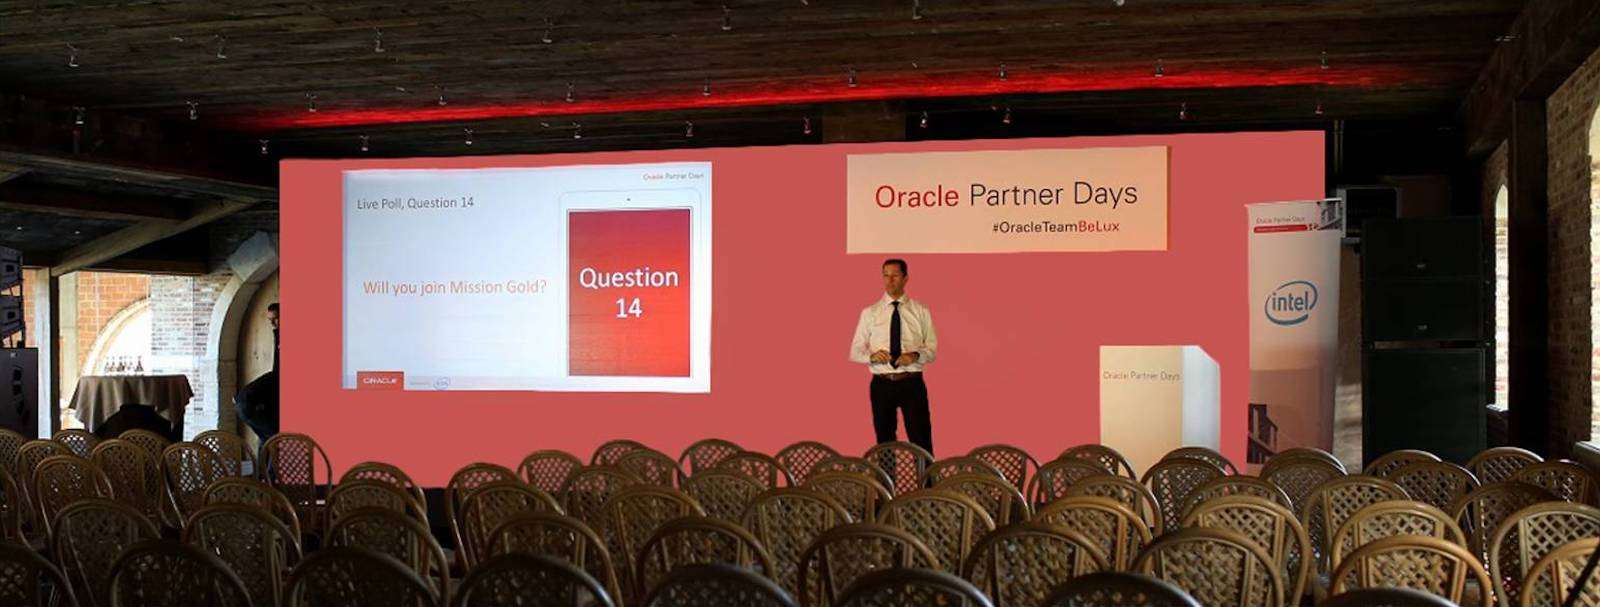 Oracle Partner Days